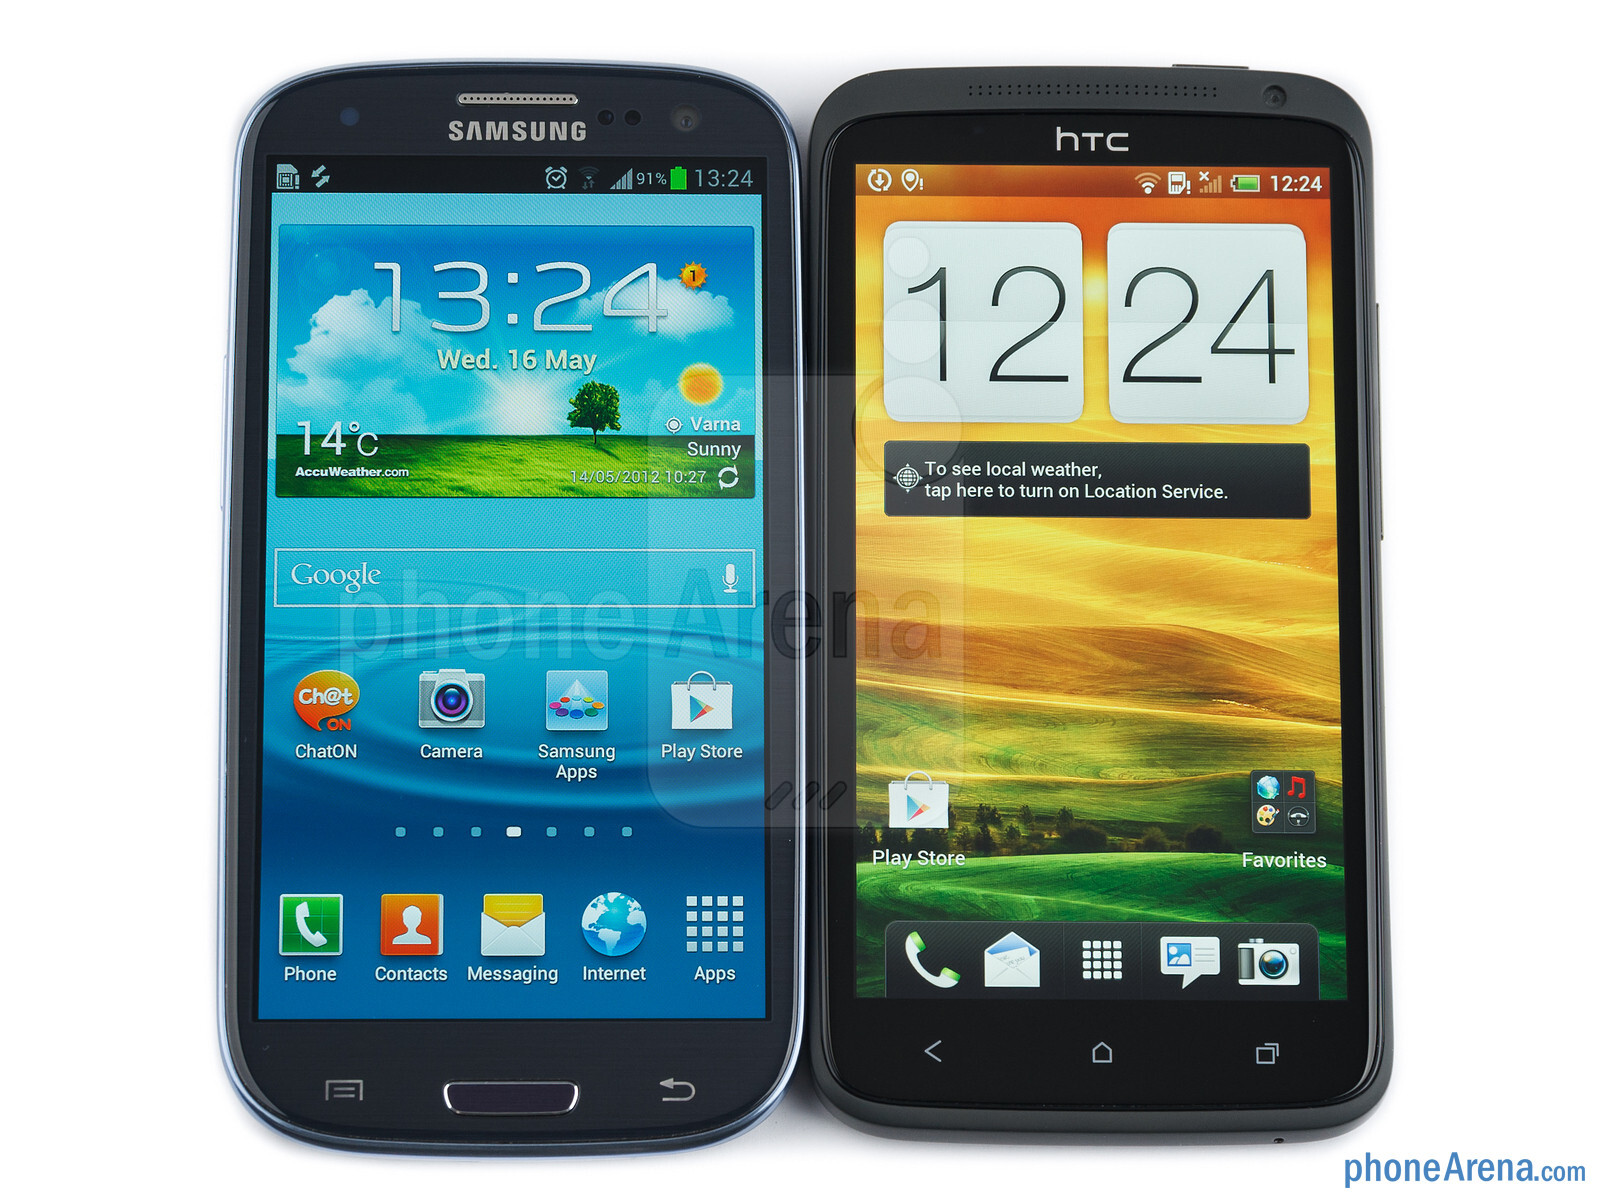 Samsung Galaxy S III vs HTC One X - Performance and Conclusion